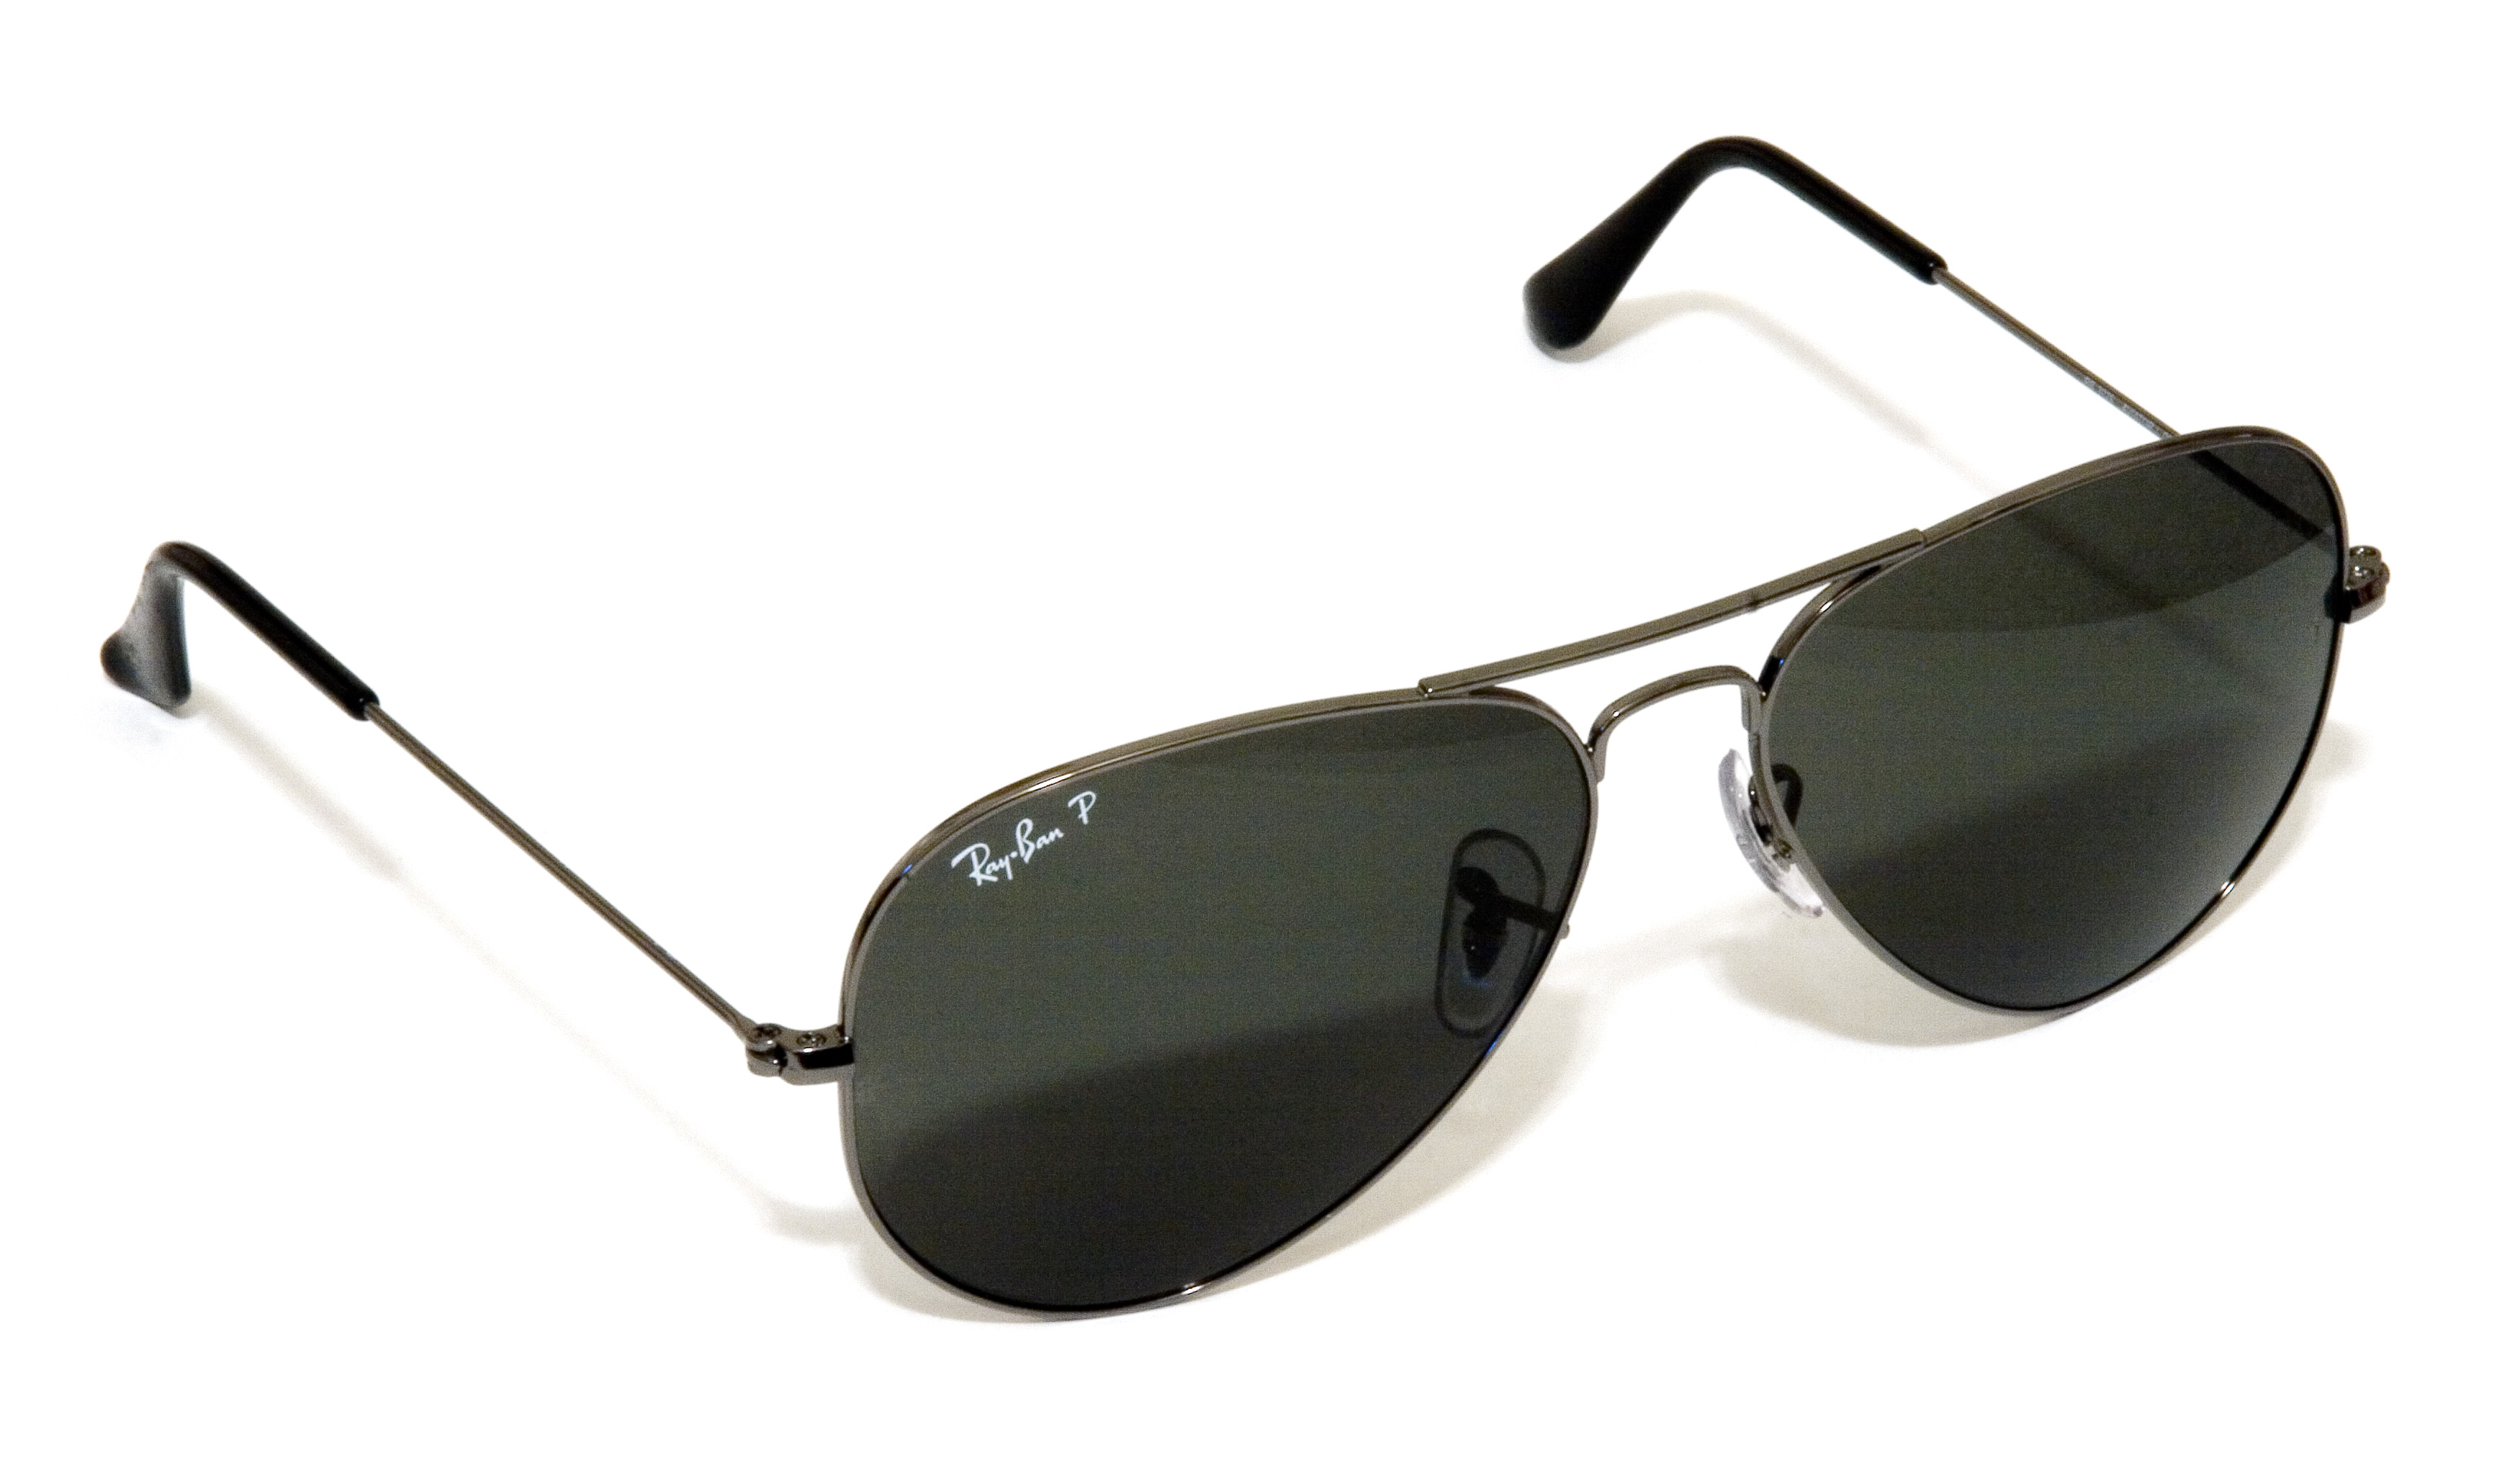 9ad6cb650 Aviator sunglasses - Wikipedia